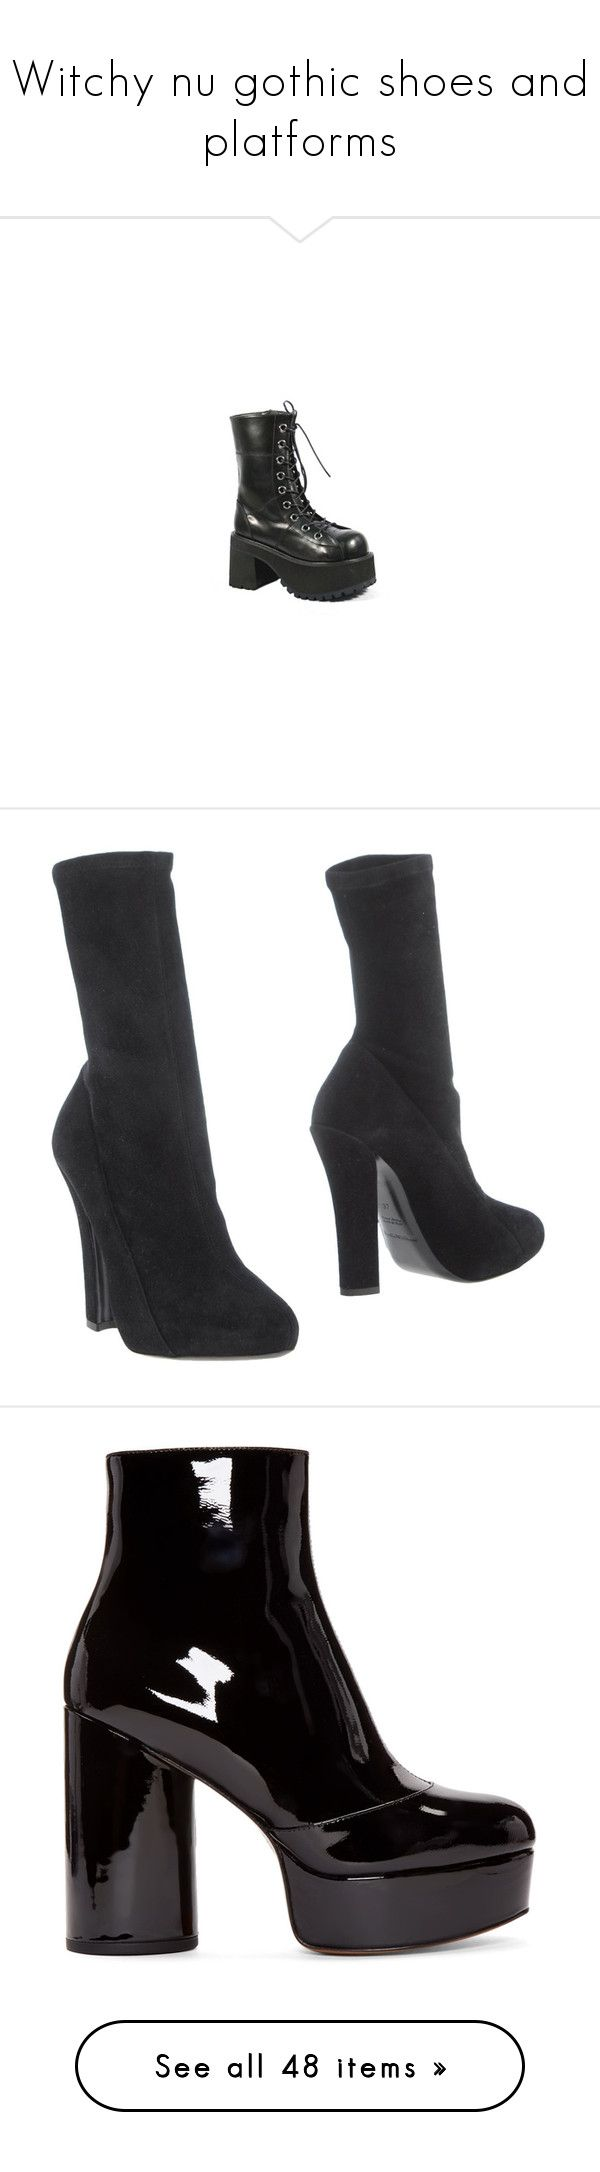 """""""Witchy nu gothic shoes and platforms"""" by giselle123456 on Polyvore featuring shoes, boots, army boots, gothic platform boots, lace up combat boots, chunky heel platform boots, chunky heel lace up boots, ankle booties, heels y black"""